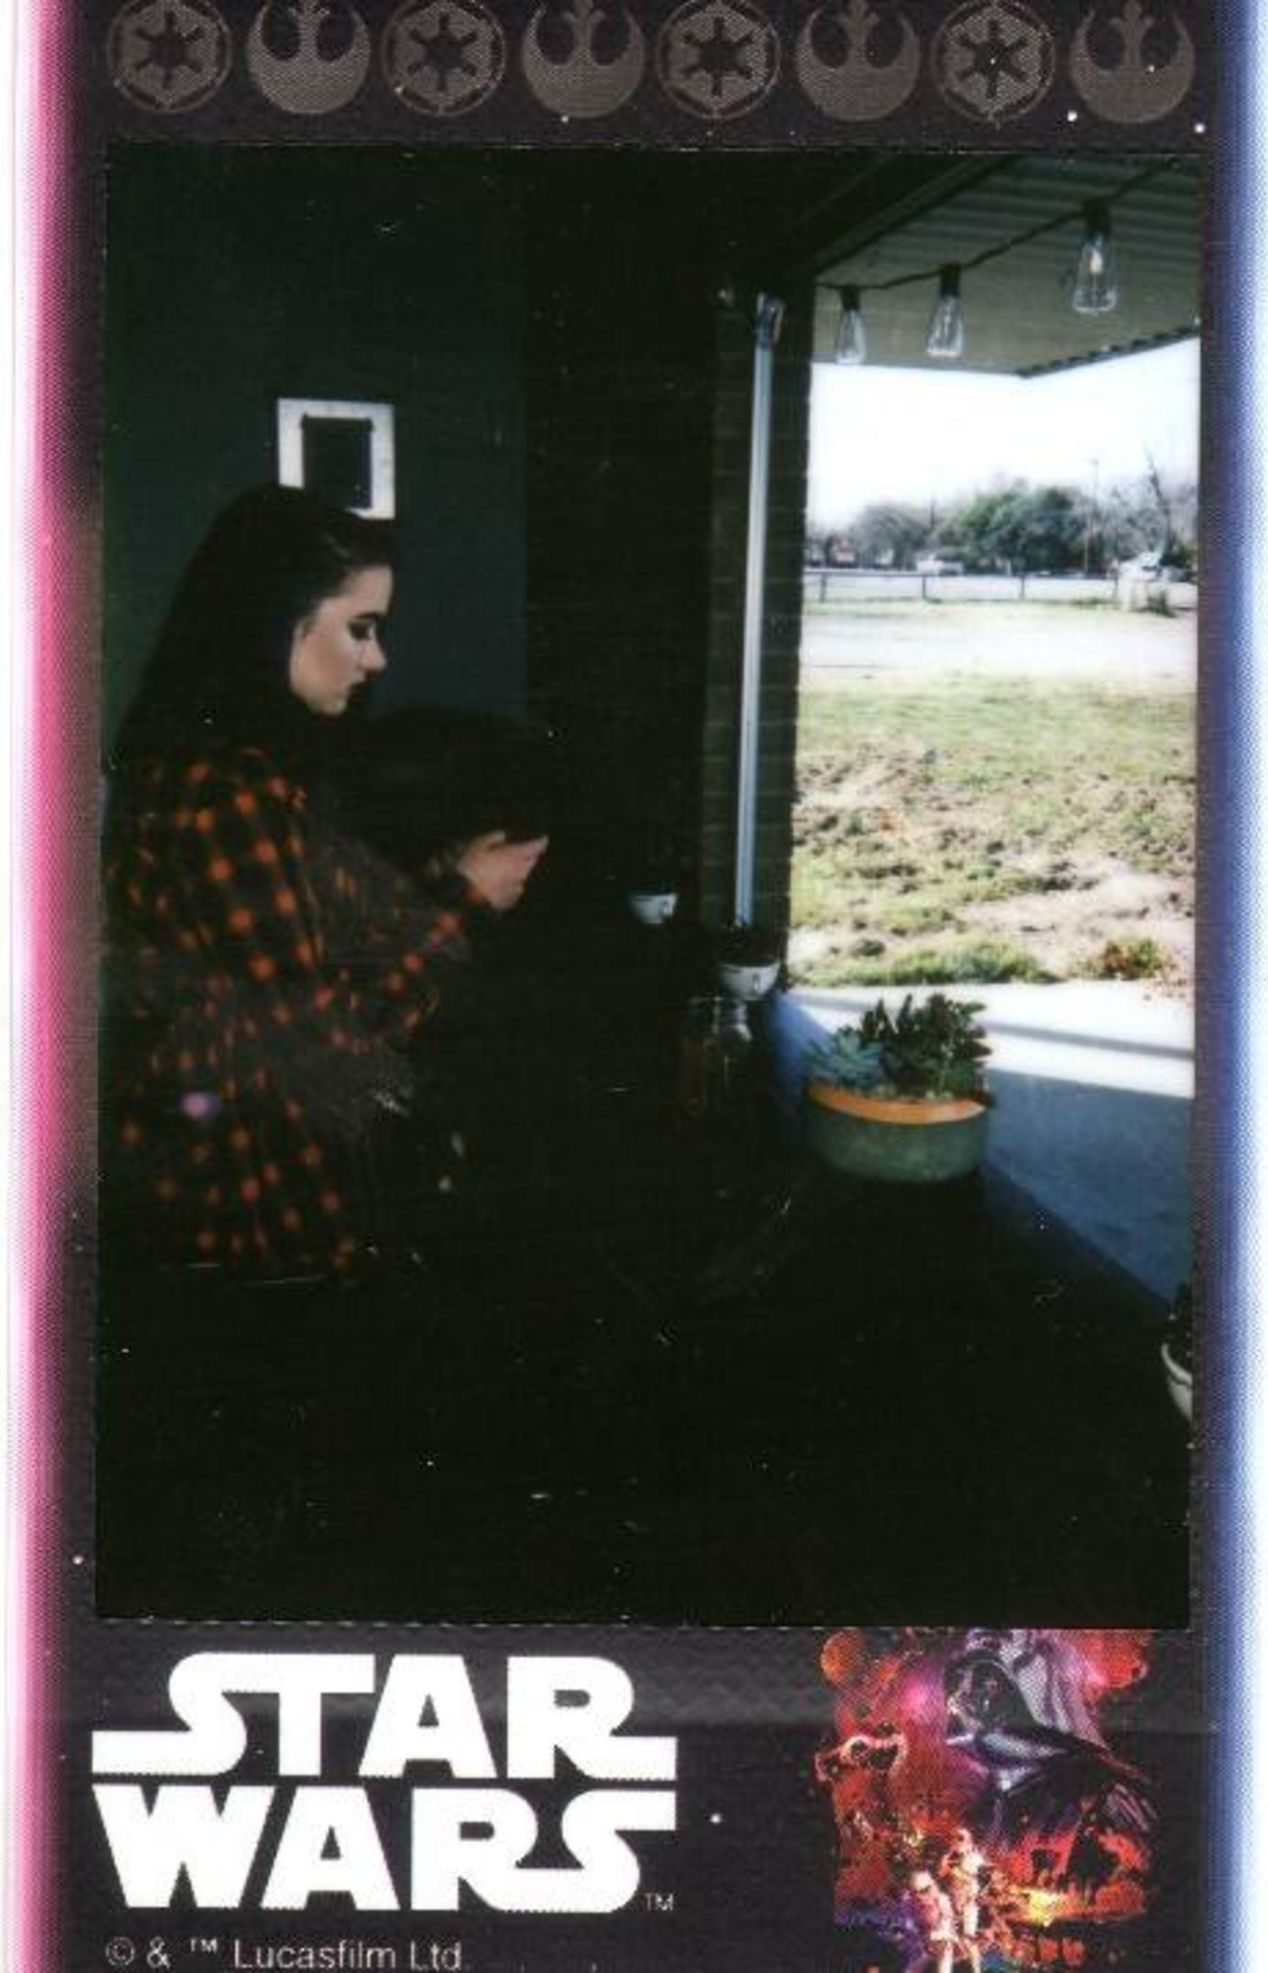 Photo of my dear friend Julie taken at Arcadia Coffee in Weatherford, TX. Shot on Instax Mini 8.